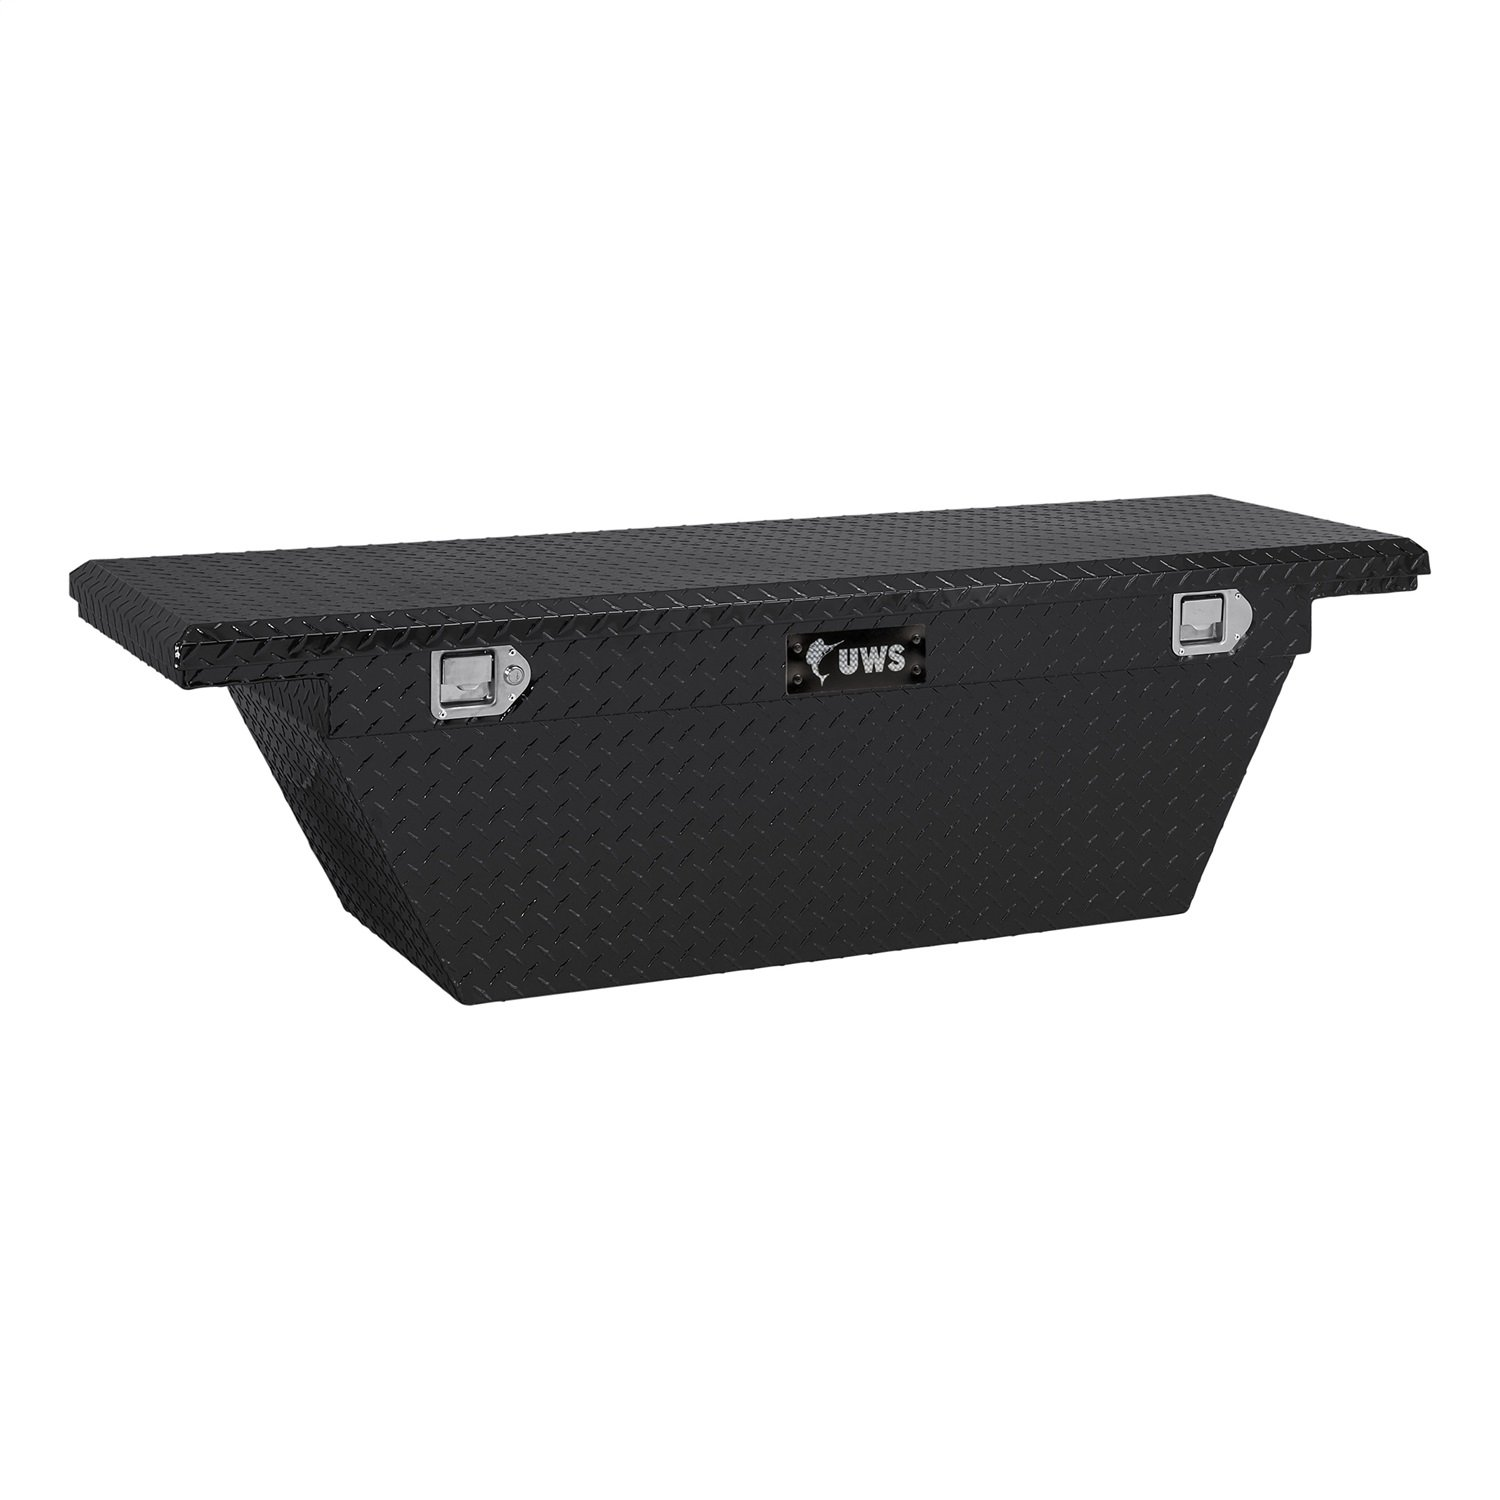 """UWS TBSD-60A-LP-BLK Black 60"""" Single Lid Deep Angled Low Profile Crossover Tool Box with Beveled Insulated Lid"""